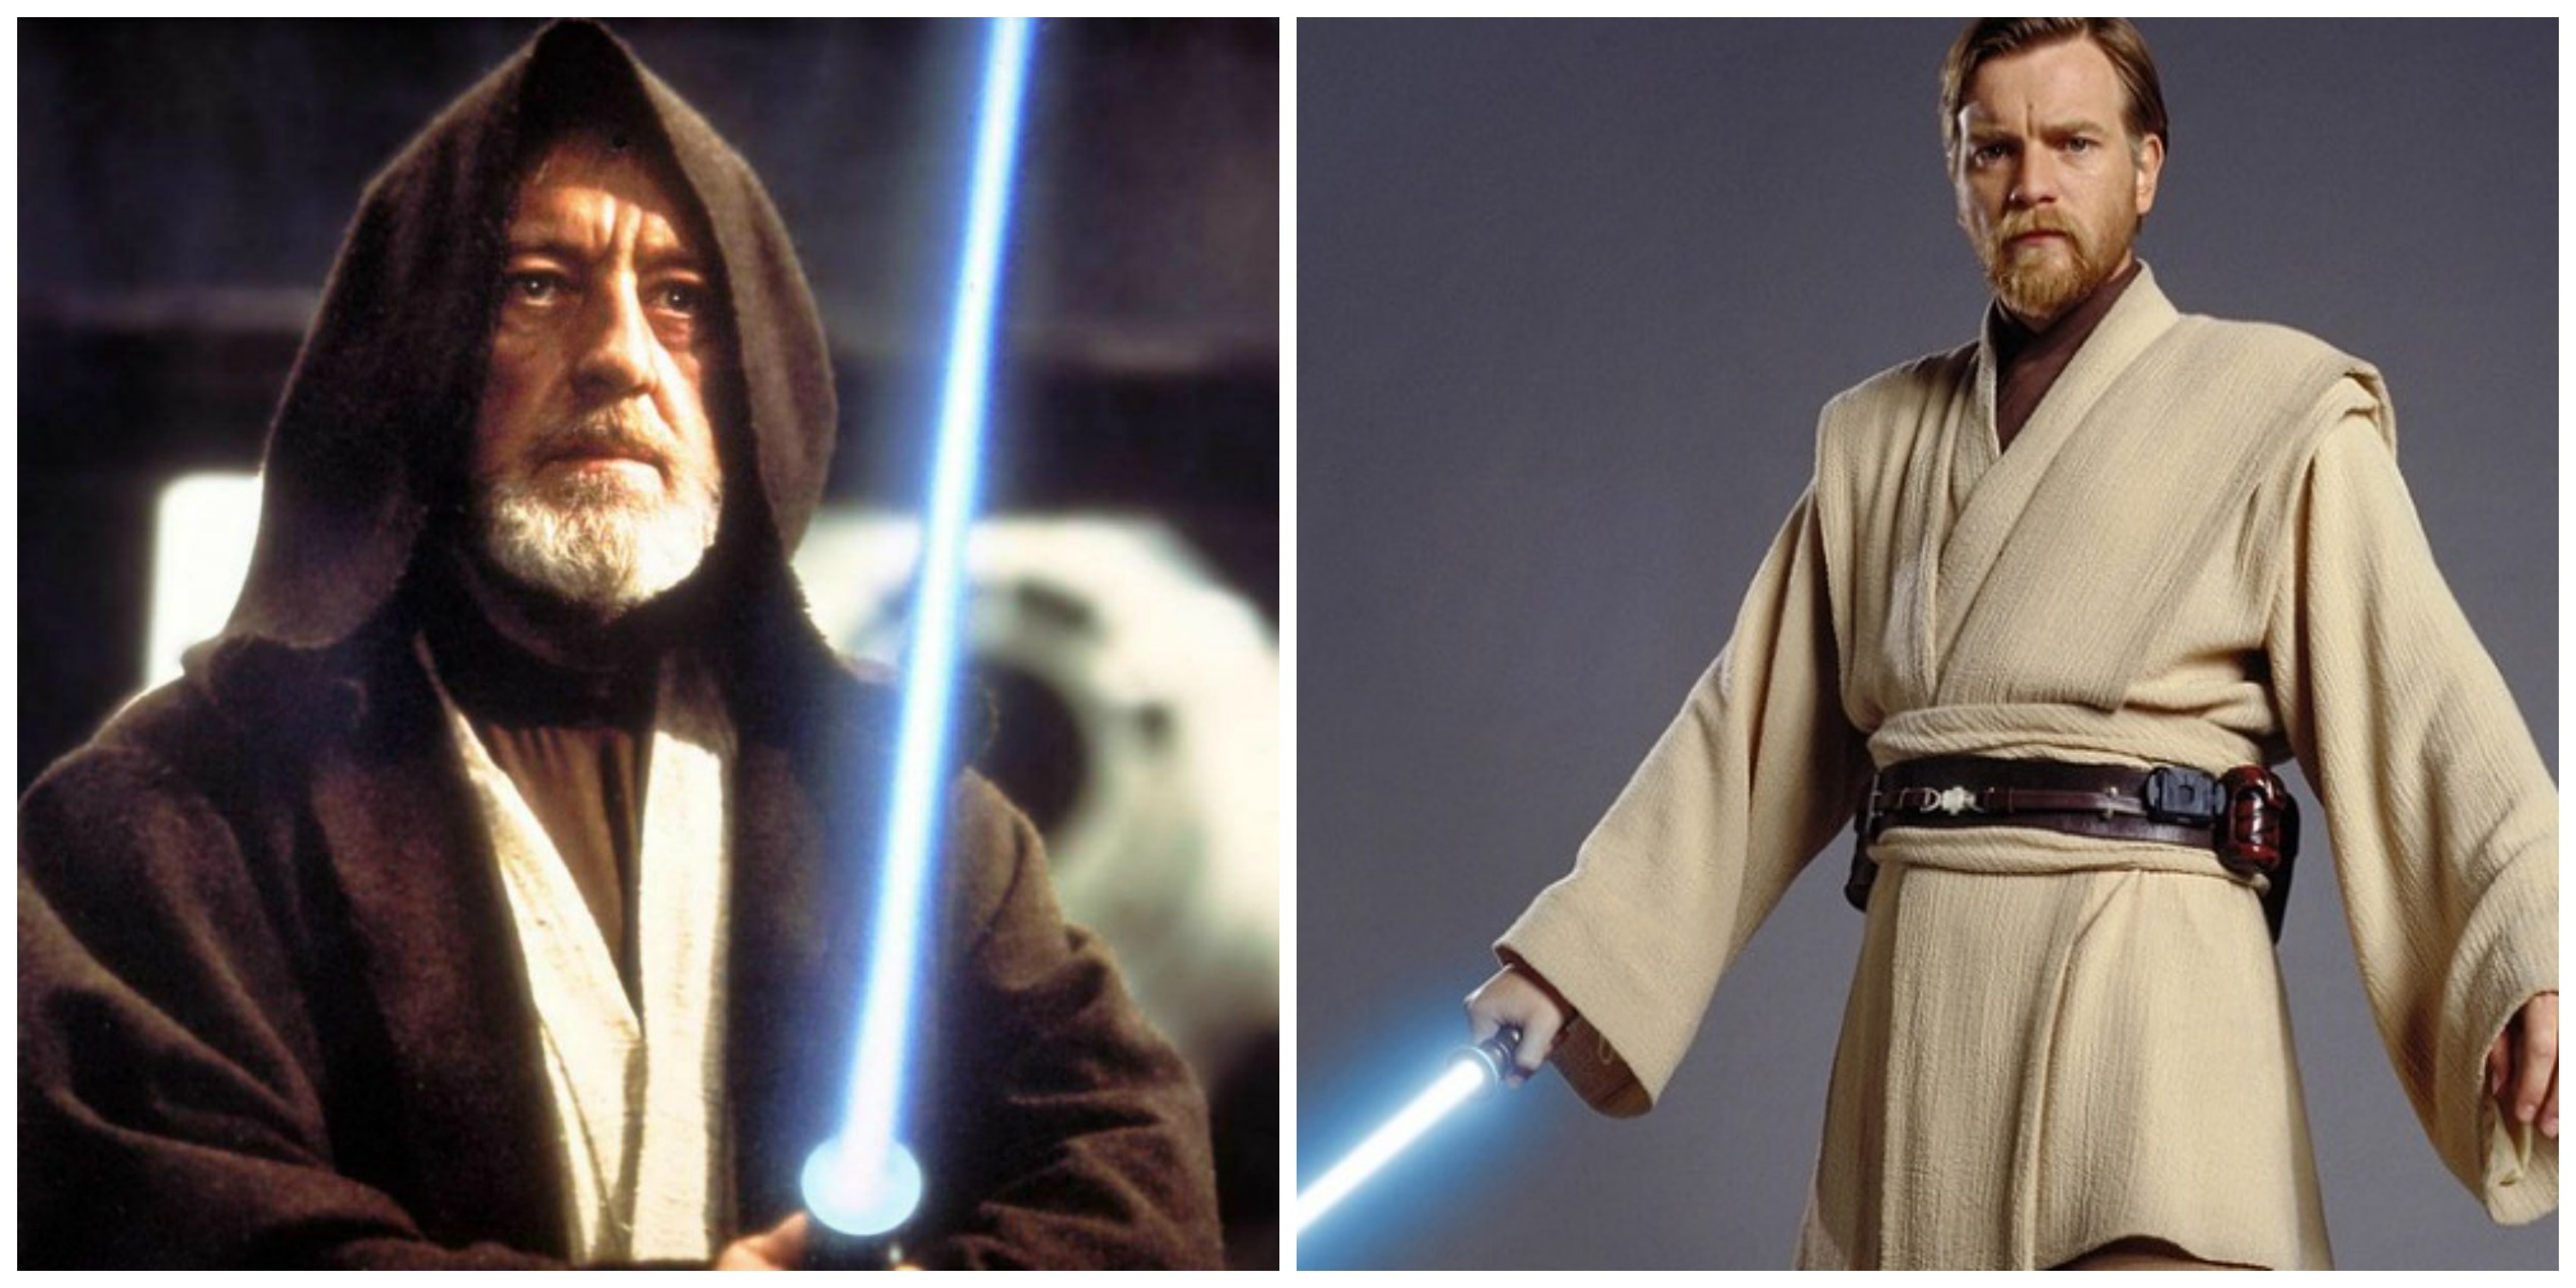 Stephen Daldry reportedly developing a Star Wars spin-off about Obi-Wan Kenobi